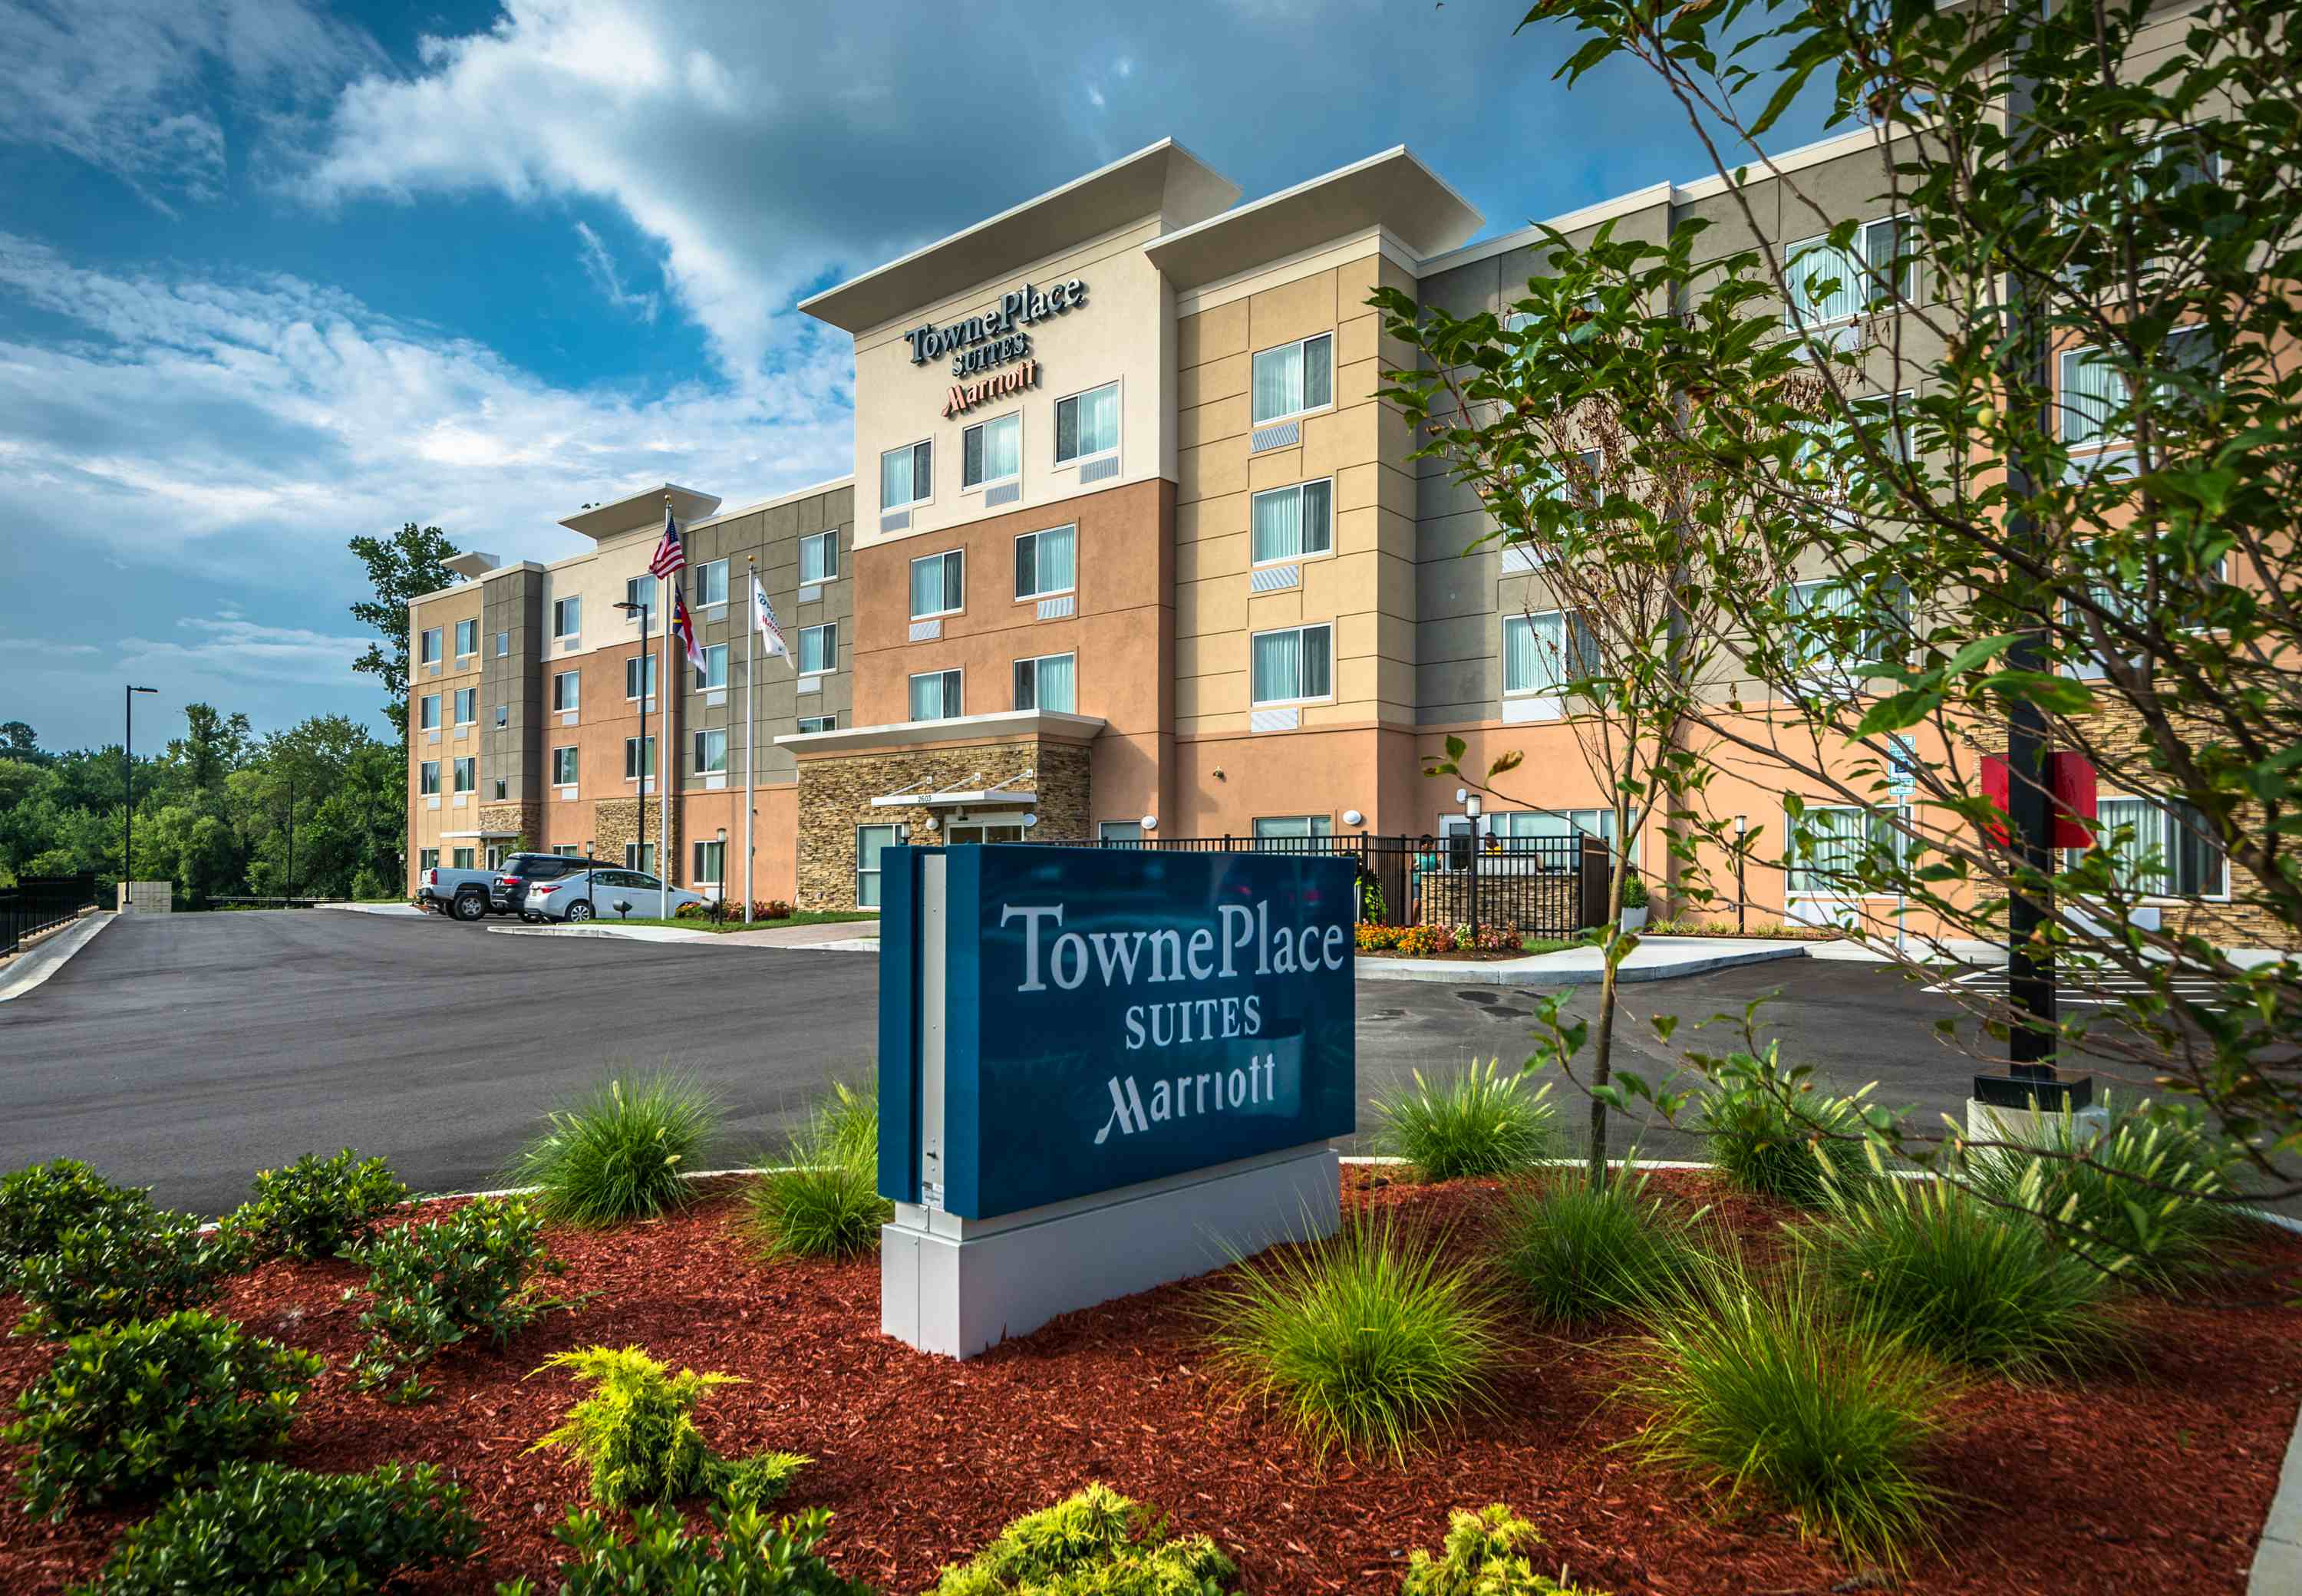 TownePlace Suites by Marriott Goldsboro image 11